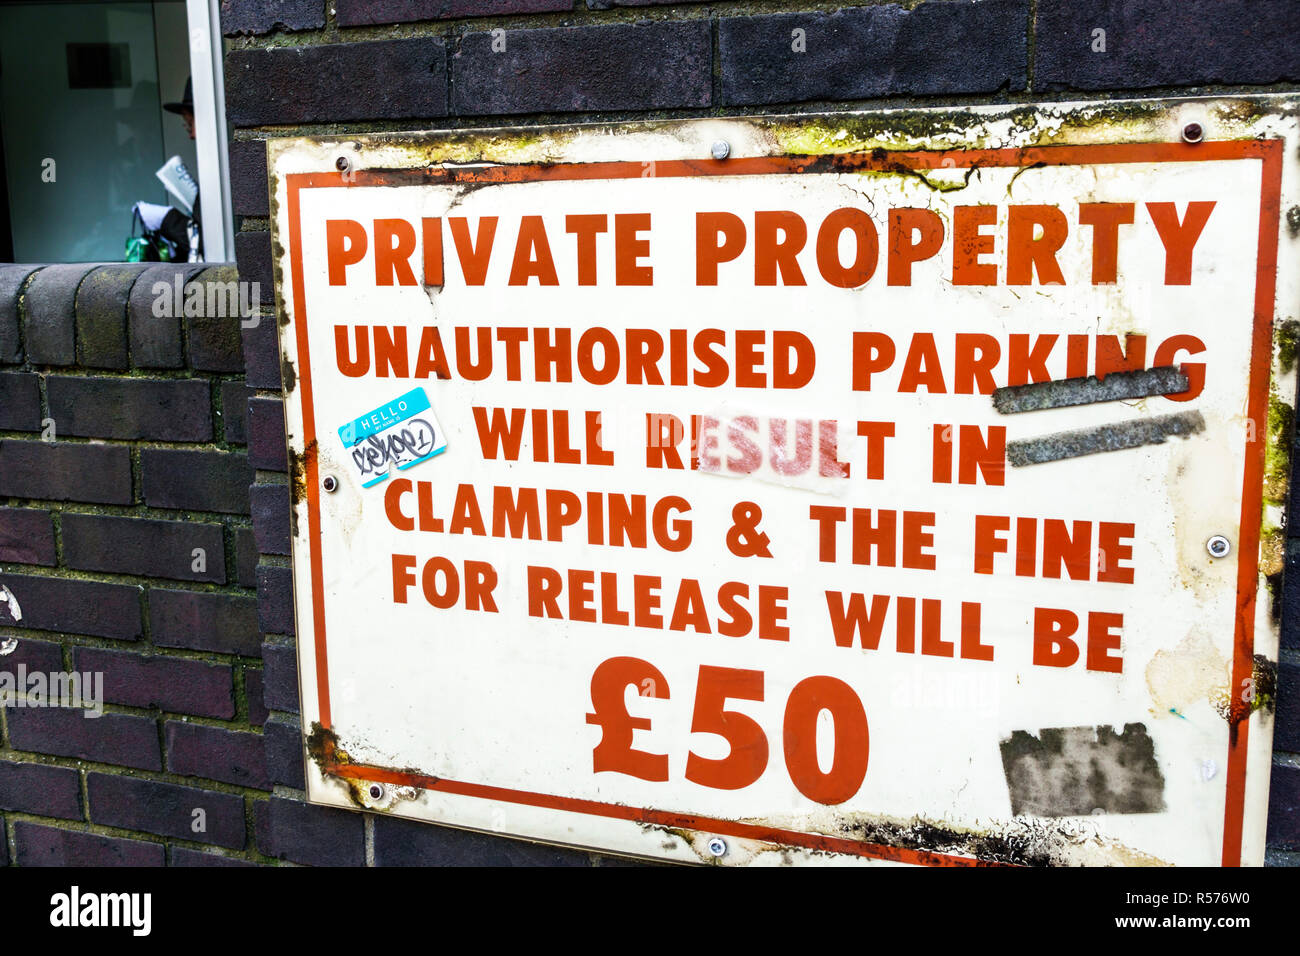 United Kingdom Great Britain England London Westminster sign parking warning private property unauthorized parking fines clamping sterling pounds symb - Stock Image